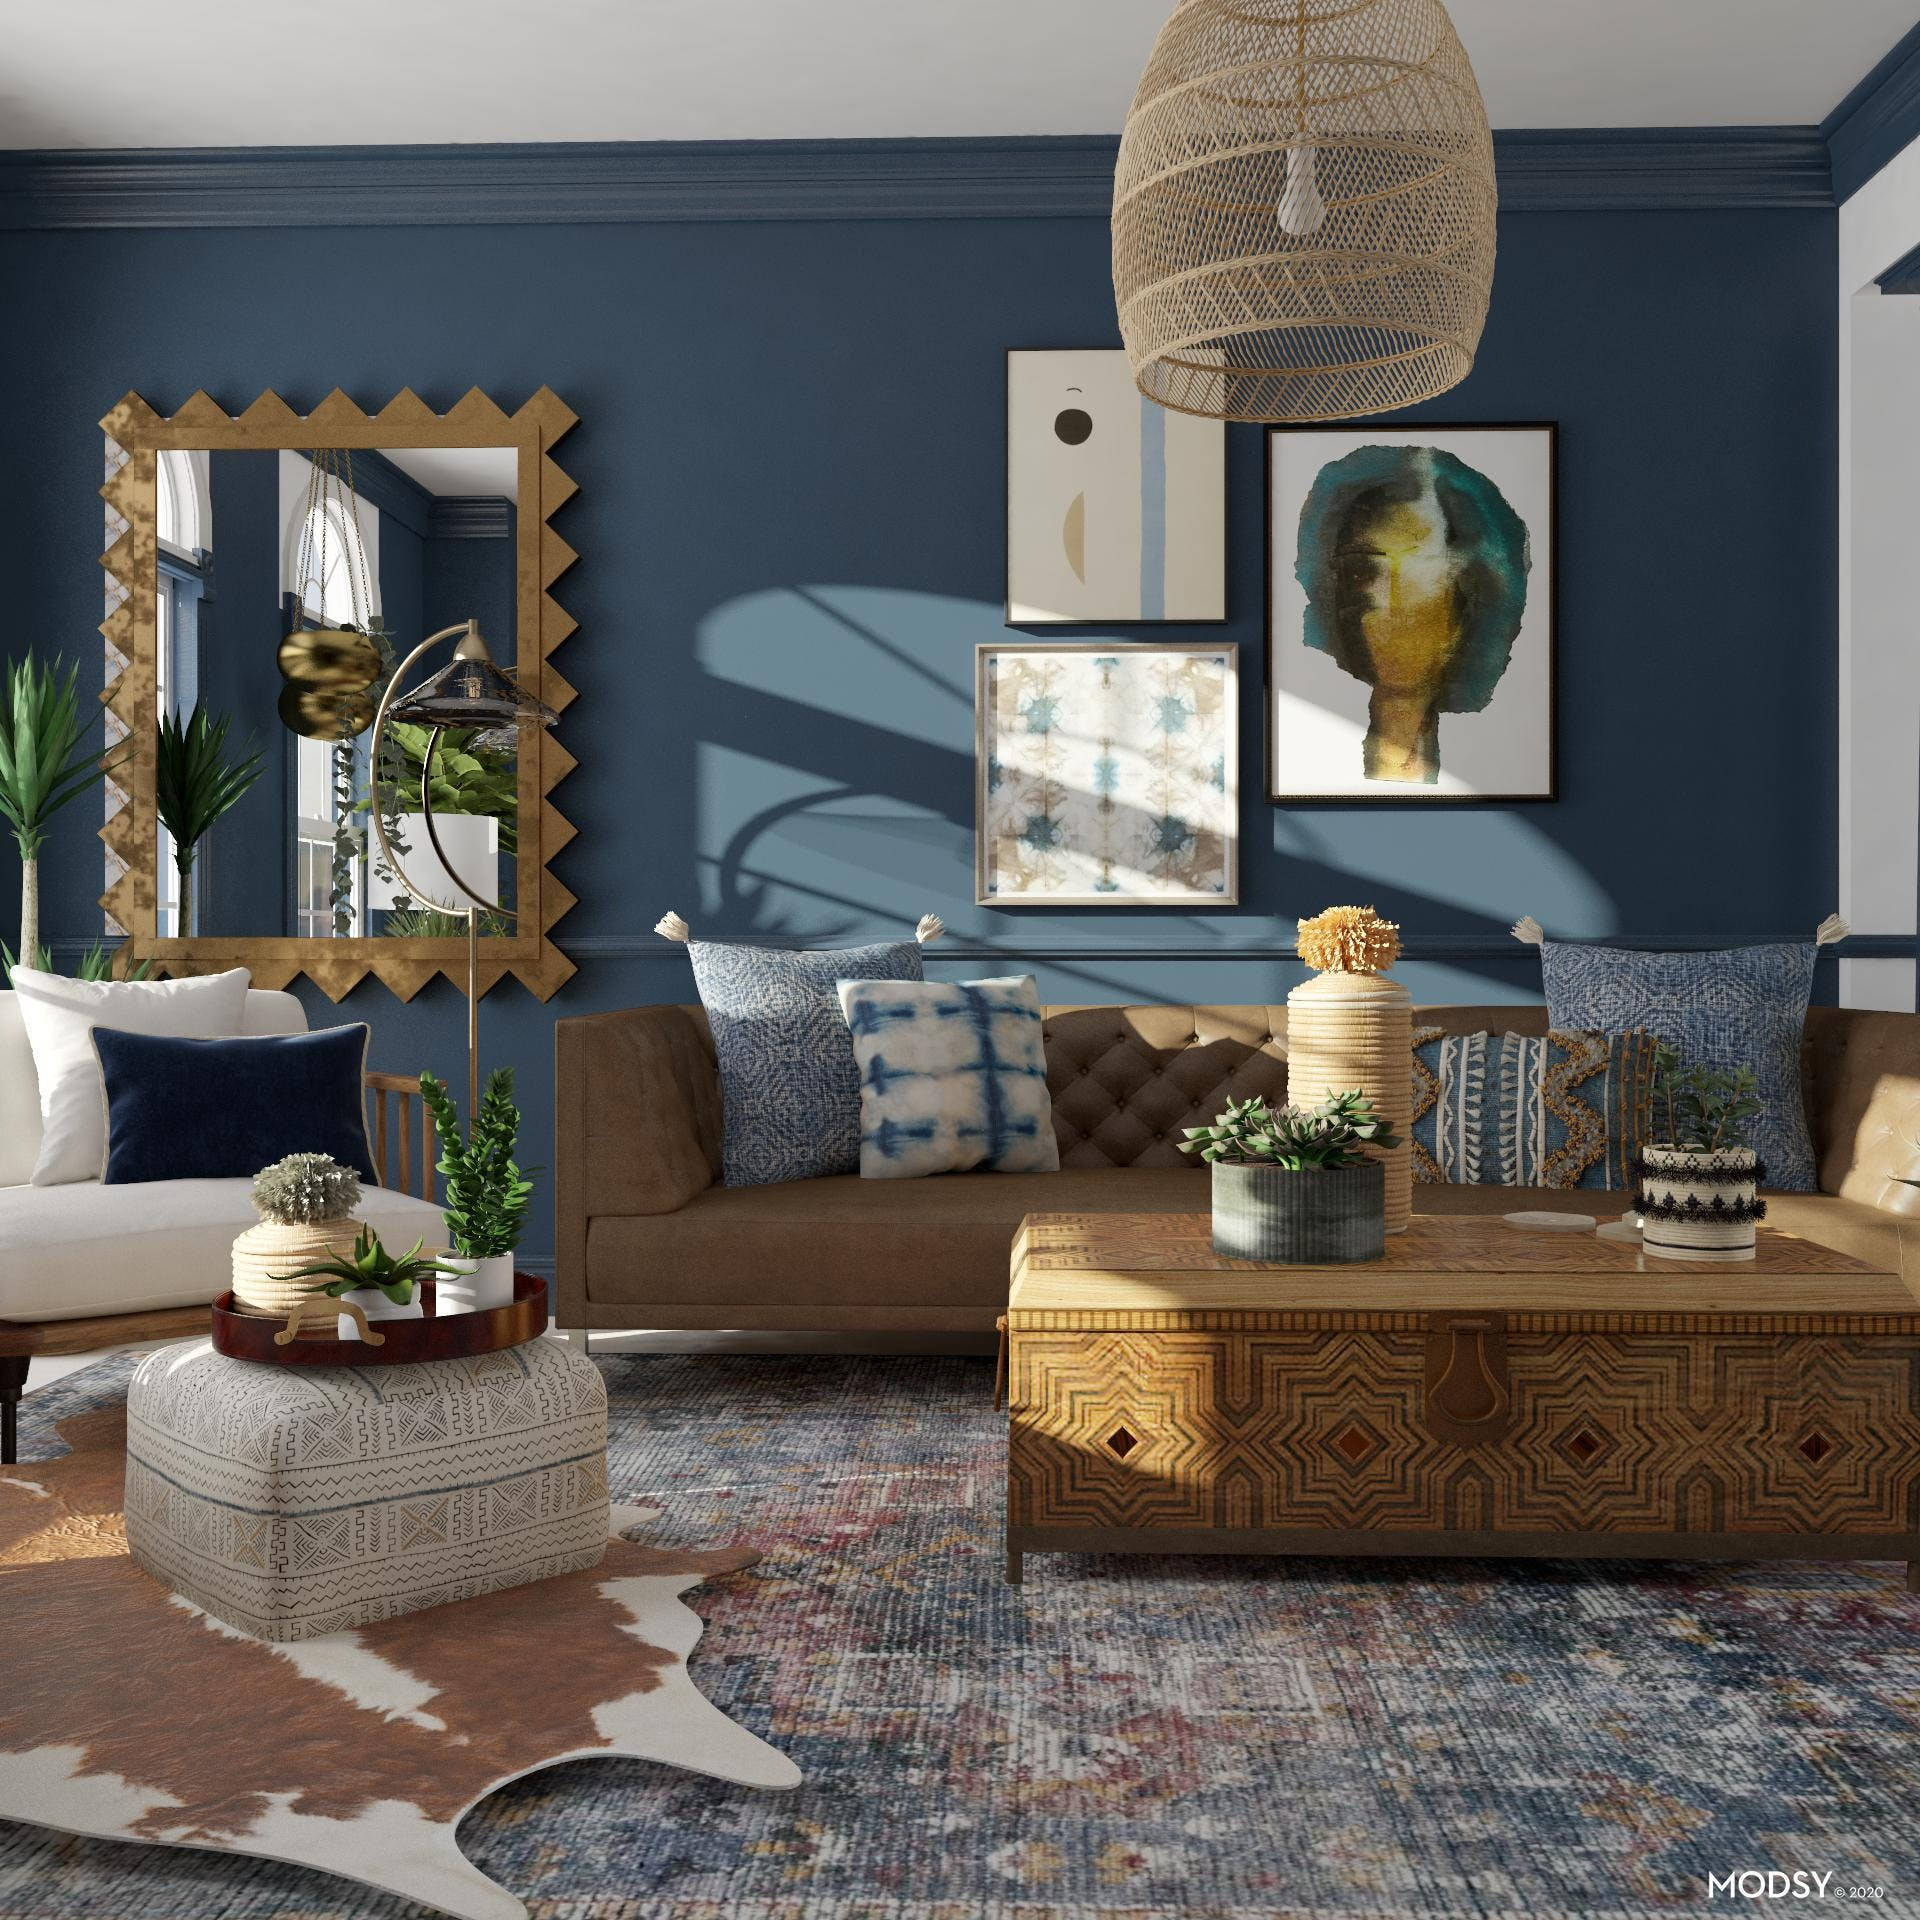 In The Details: Eclectic Living Room Design